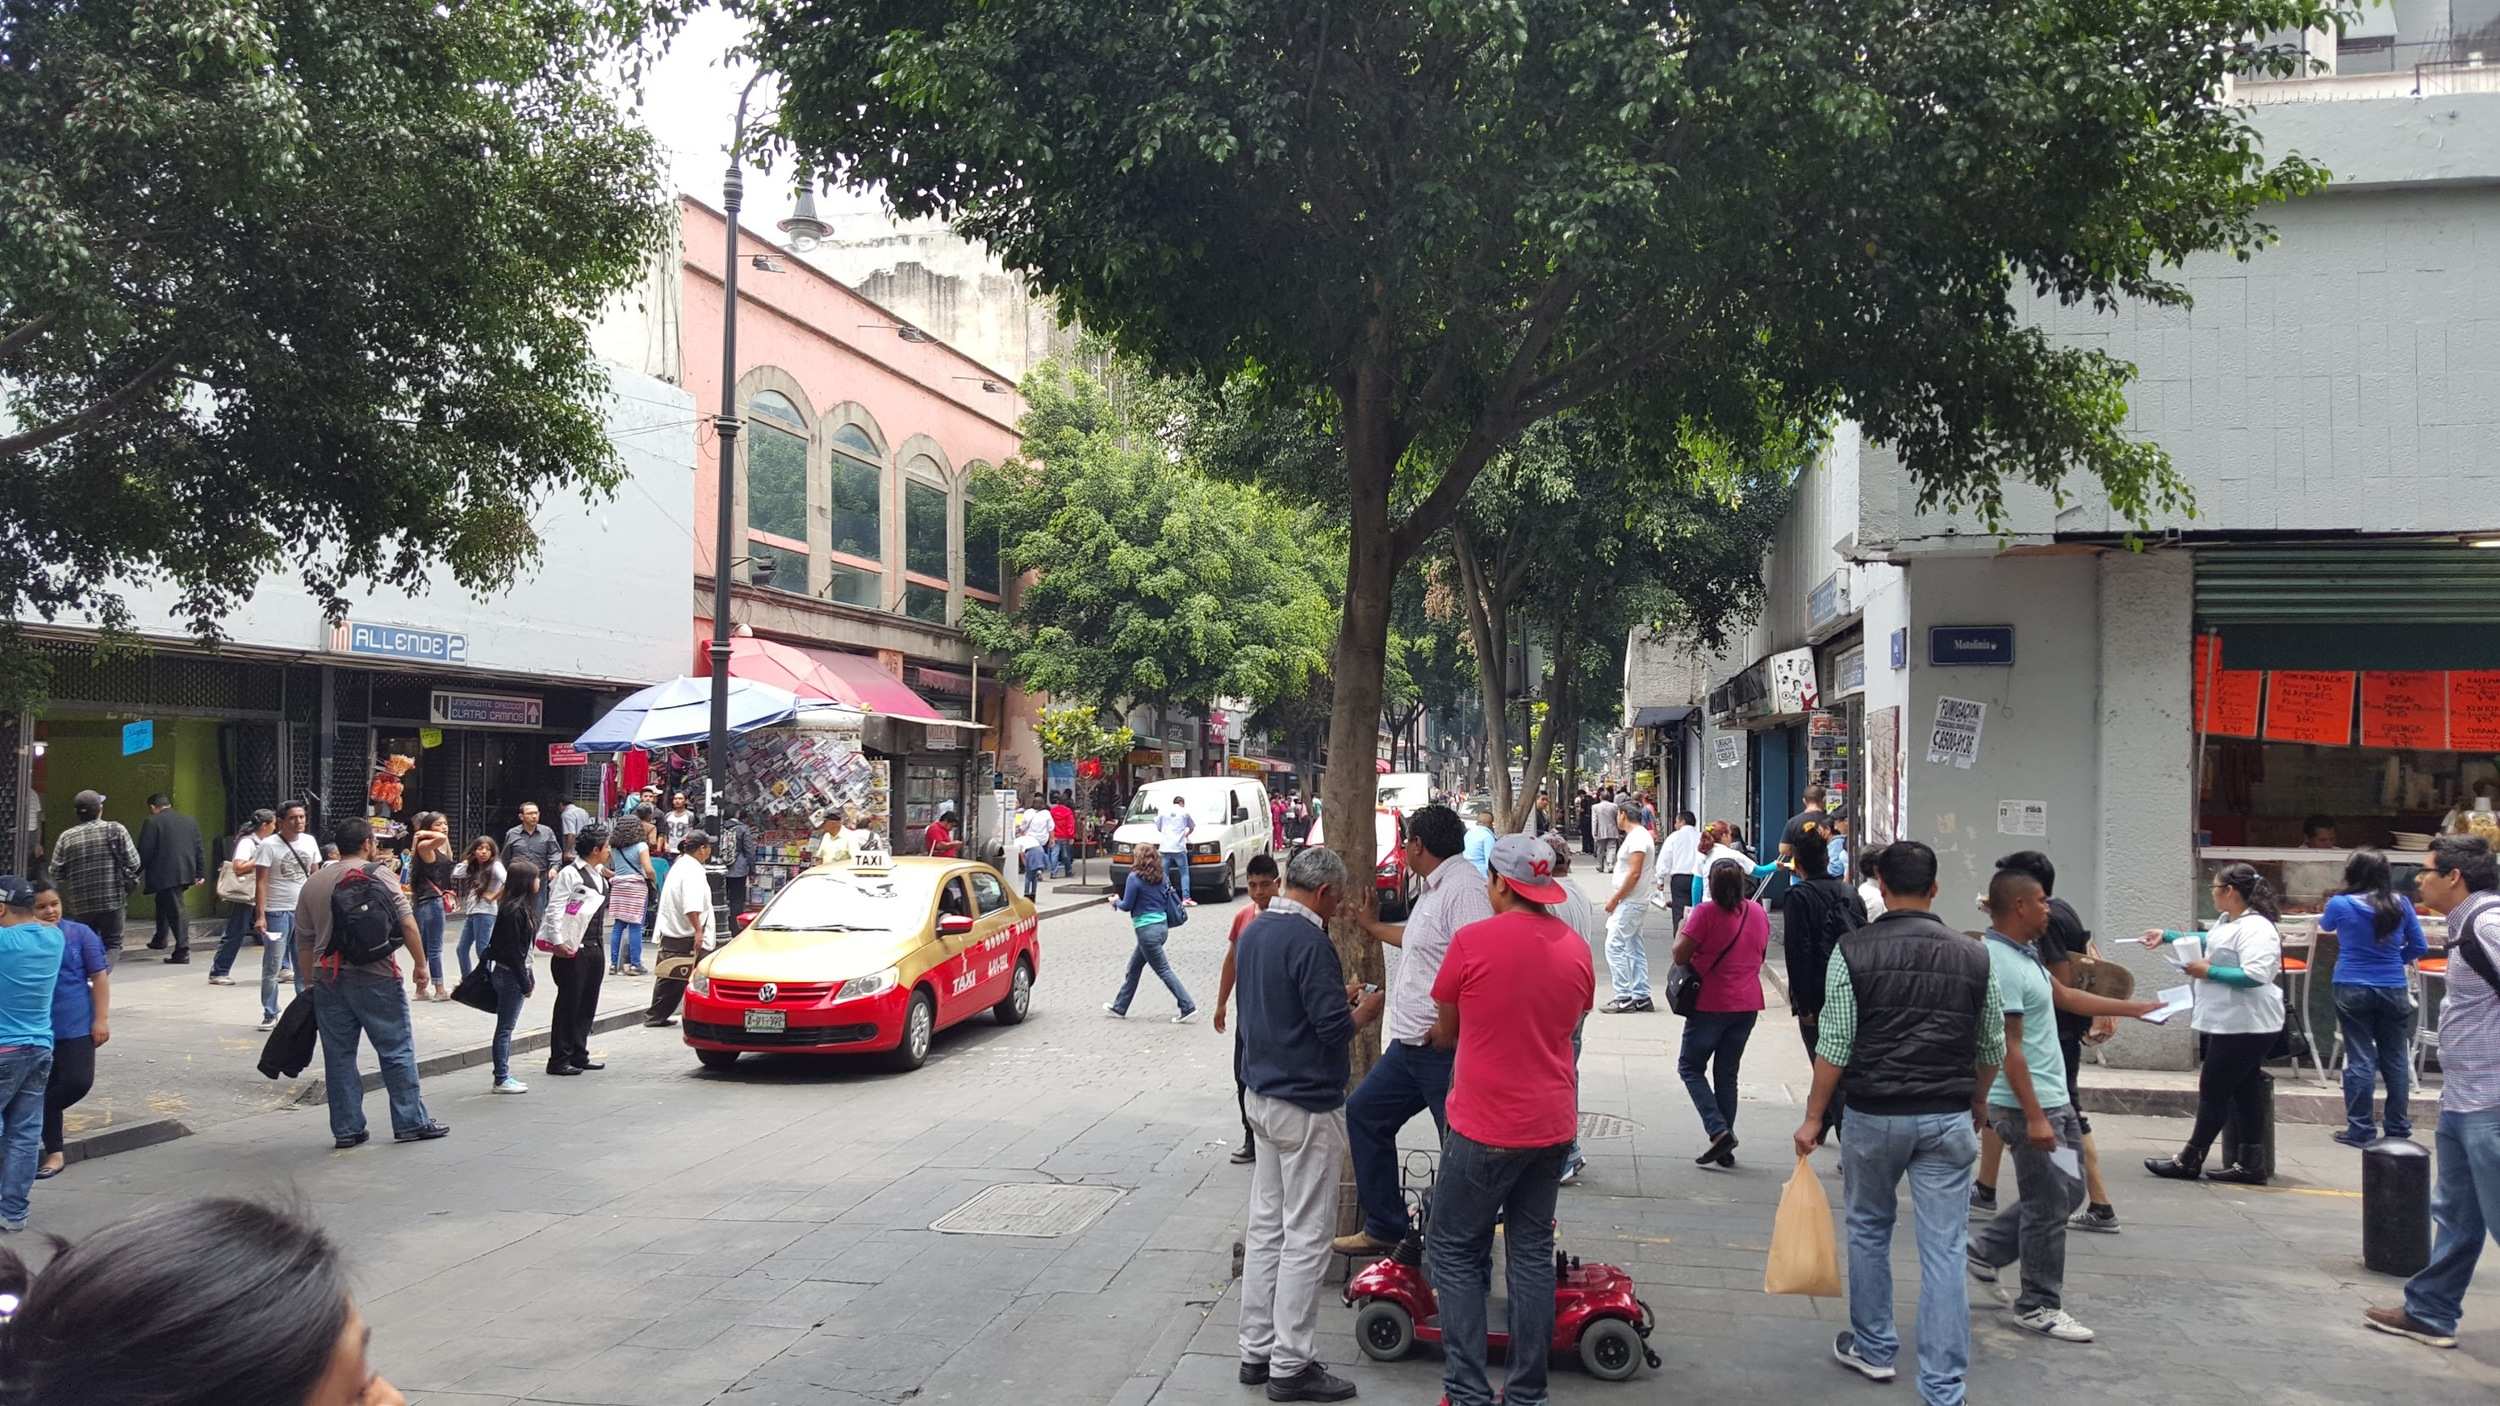 People jaywalking all over the place in this street in Mexico City. Why? Because it does not feel dangerous to walk in the middle of the street when everybody else is doing it.